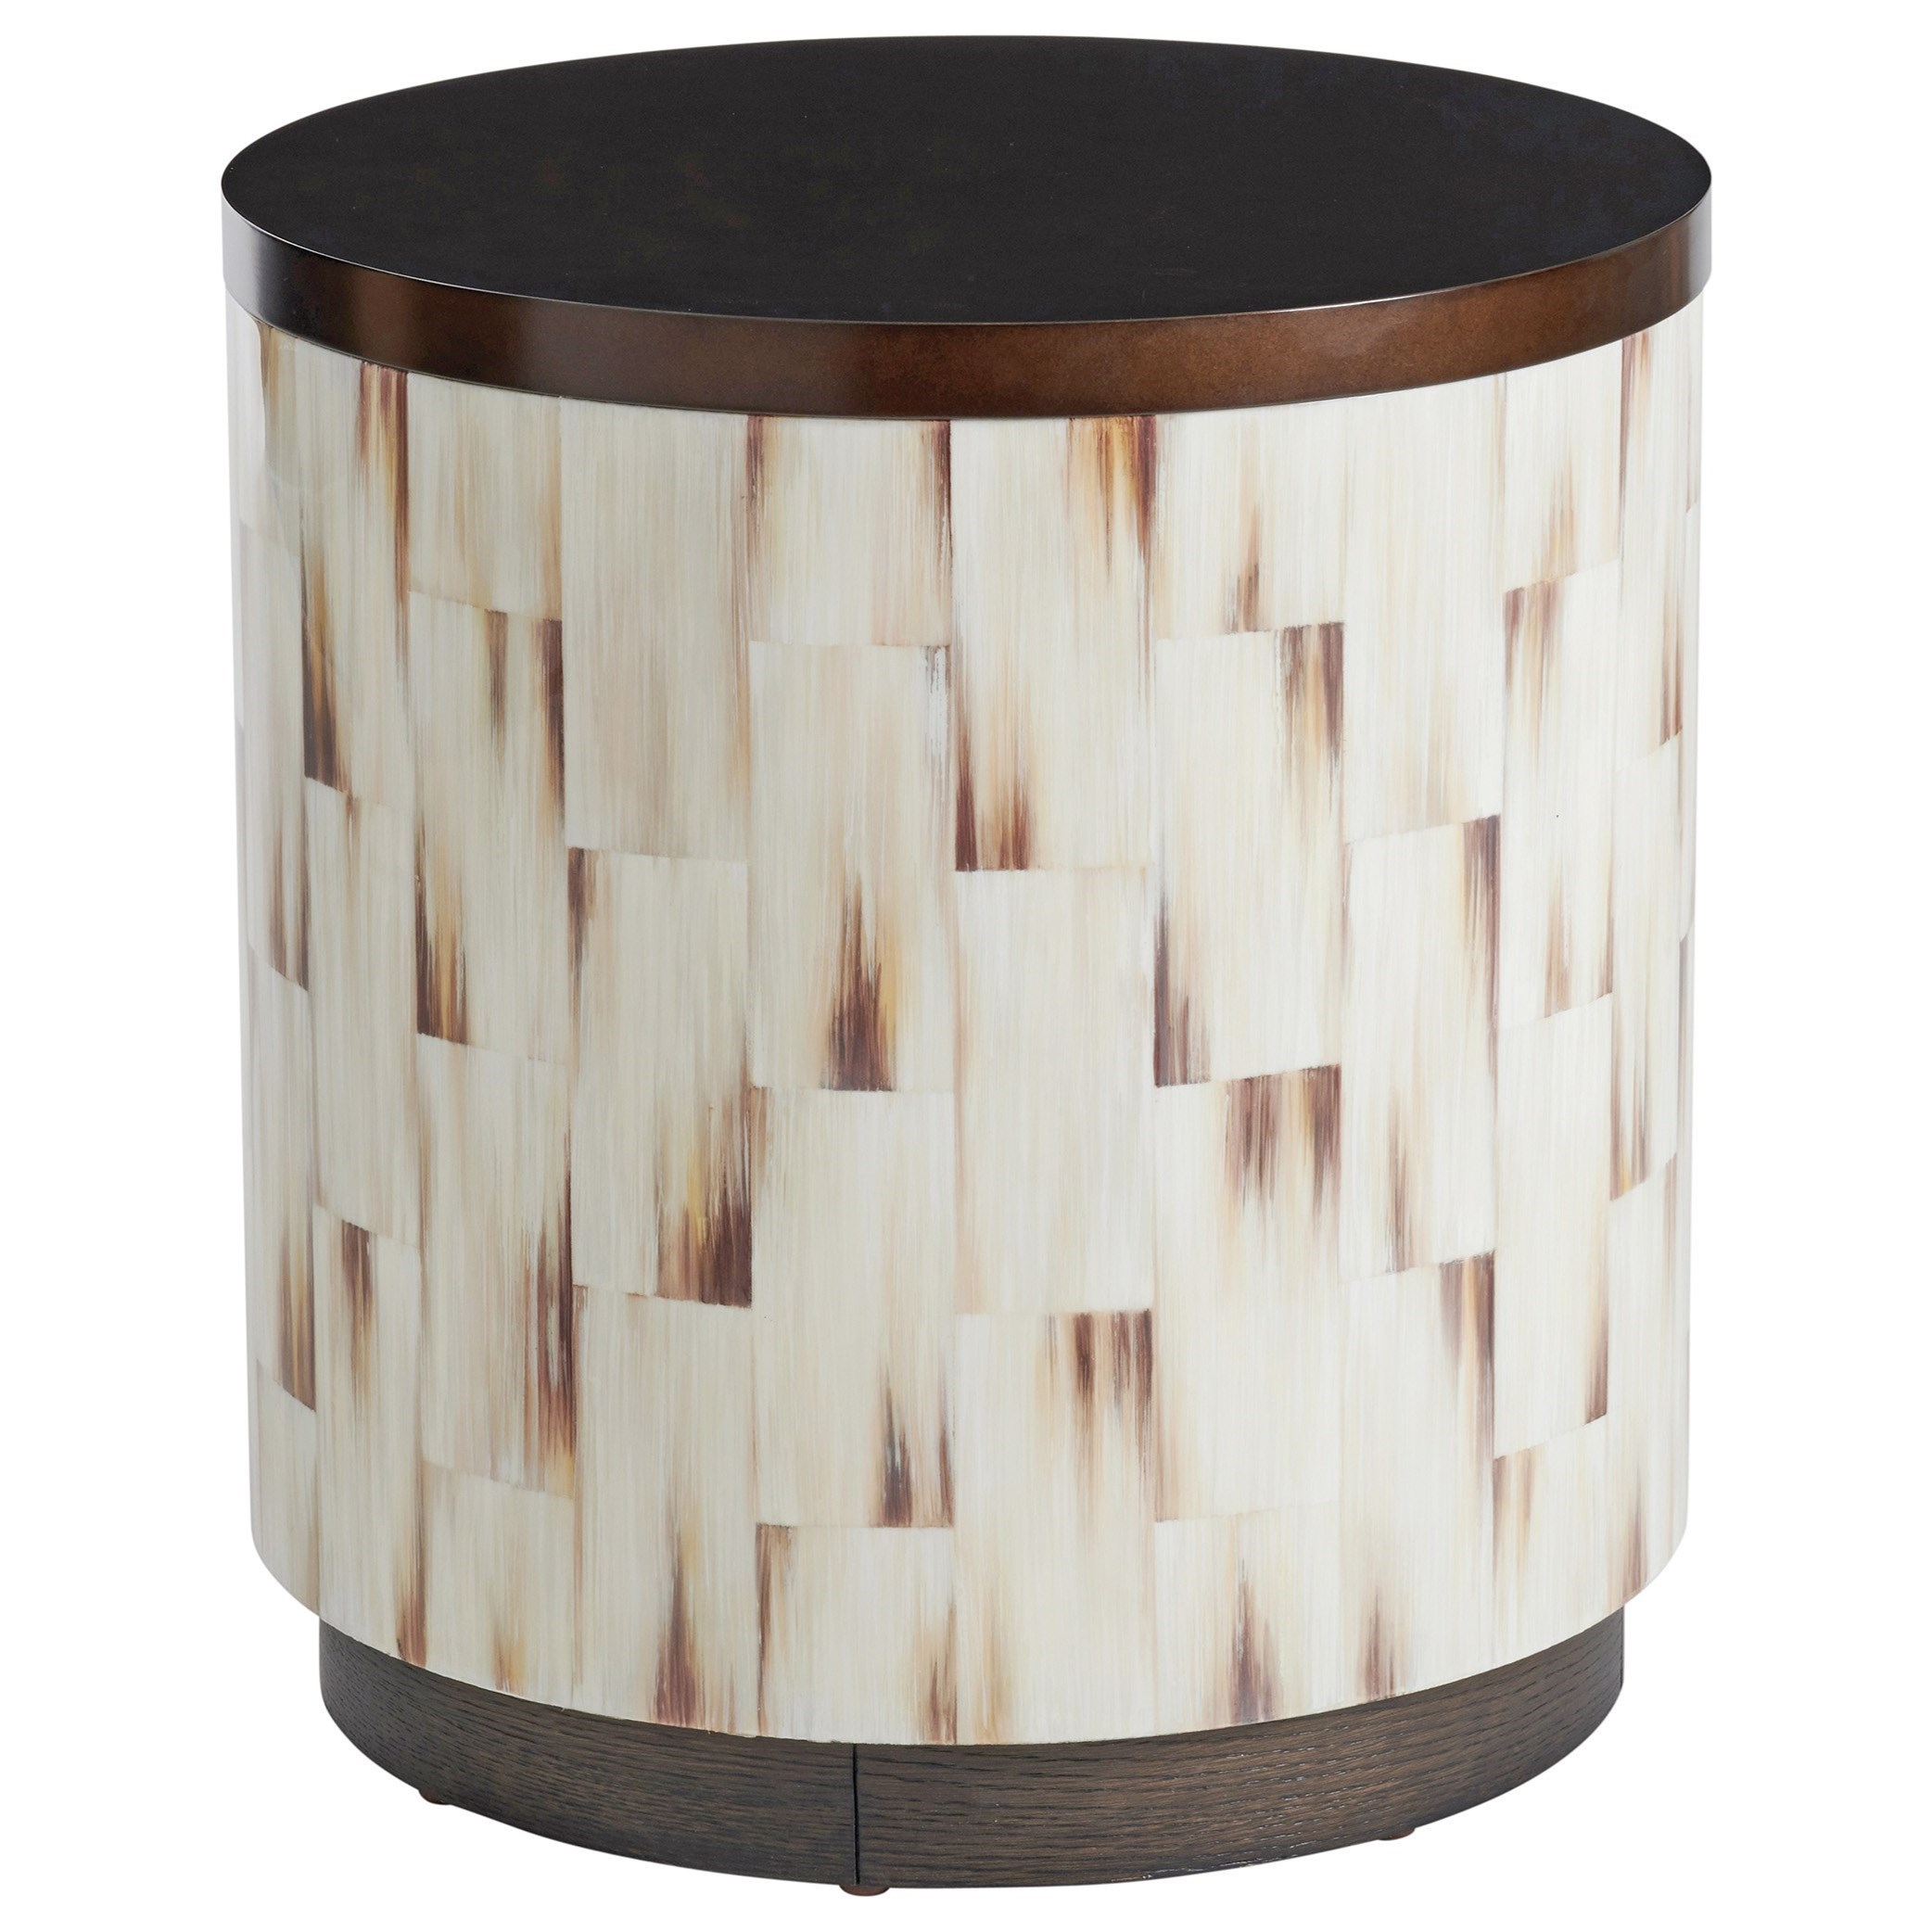 Park City Crescent Commode End Table by Barclay Butera at Baer's Furniture